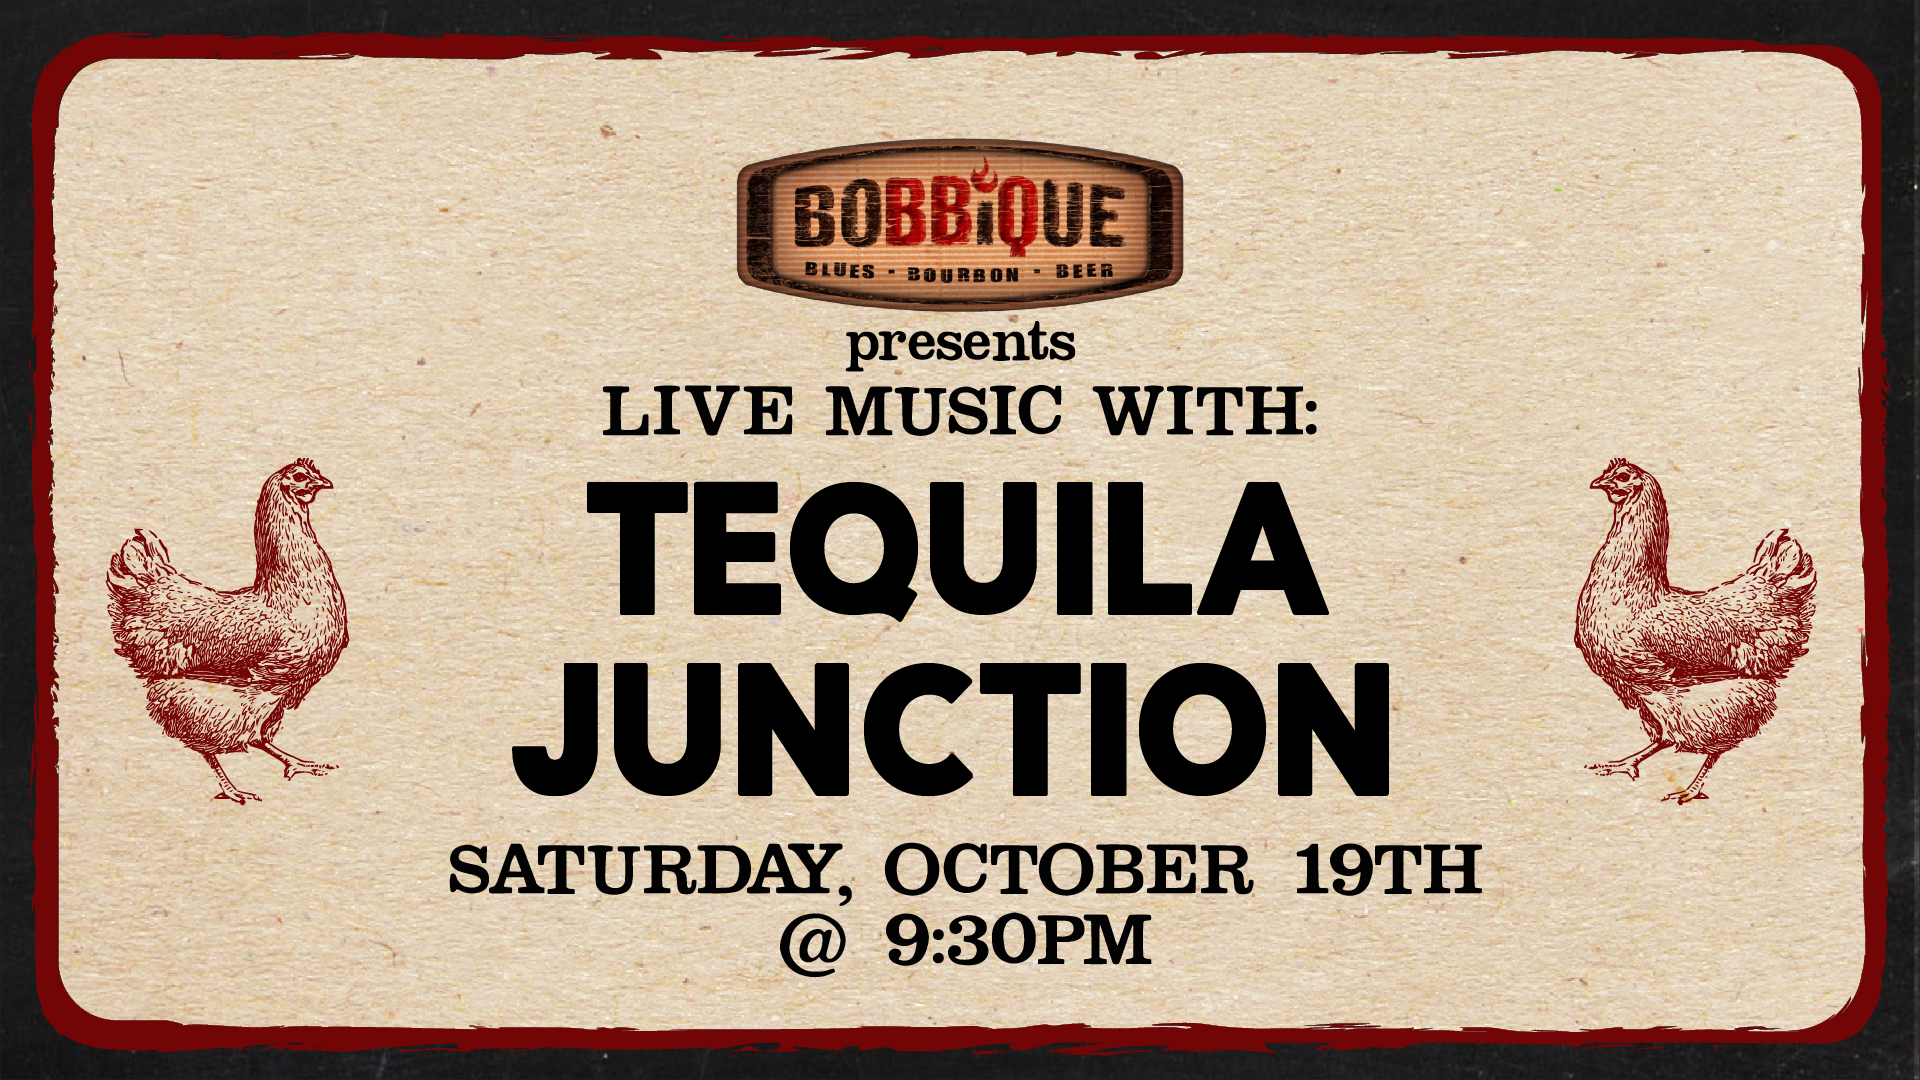 Live Music with Tequila Junction